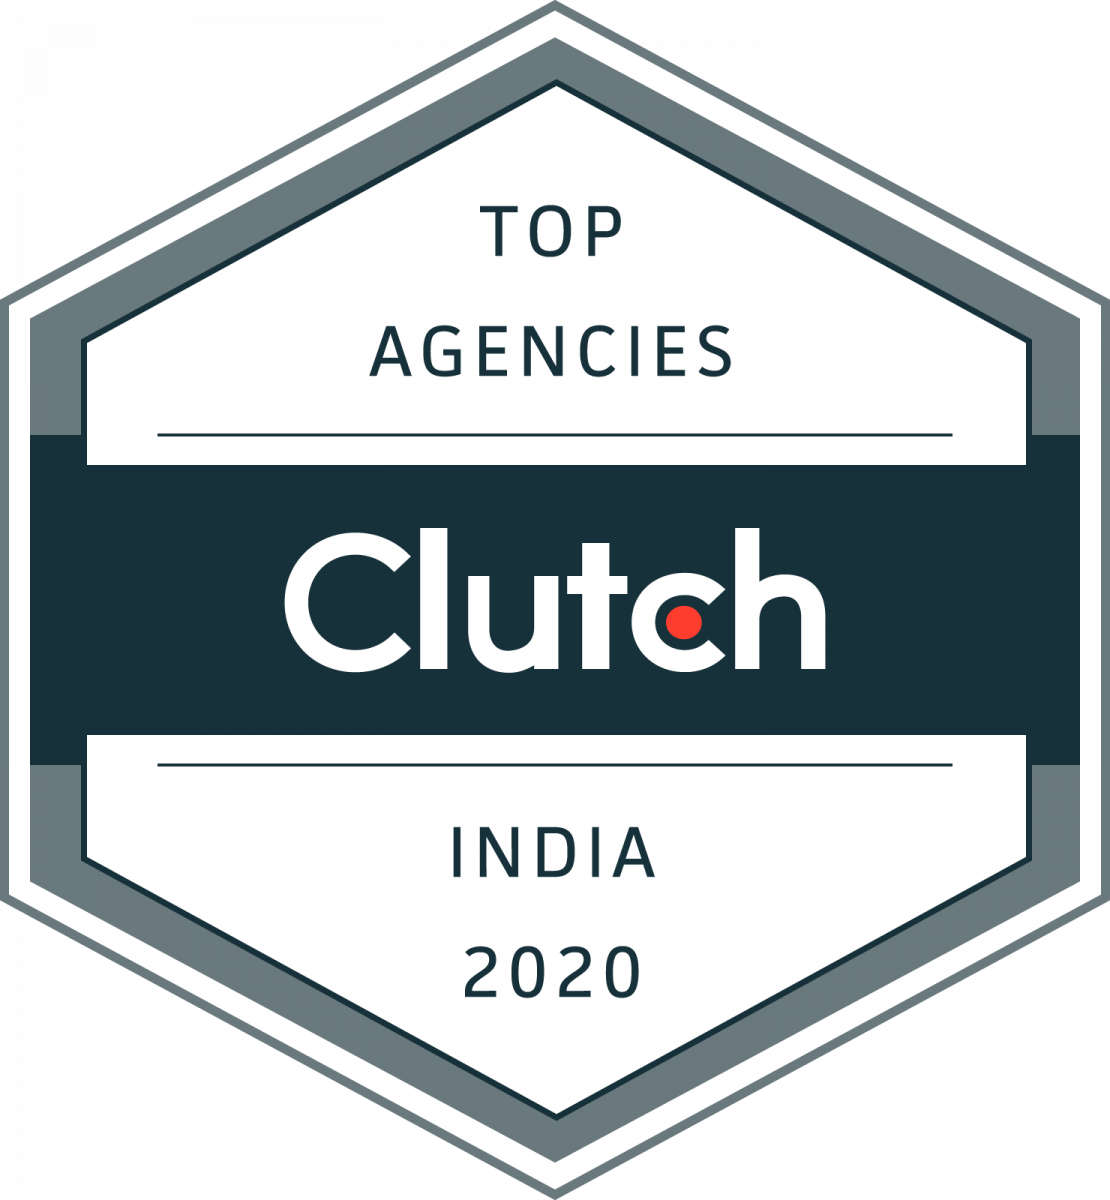 india creative, design, advertising, marketing agencies 2020